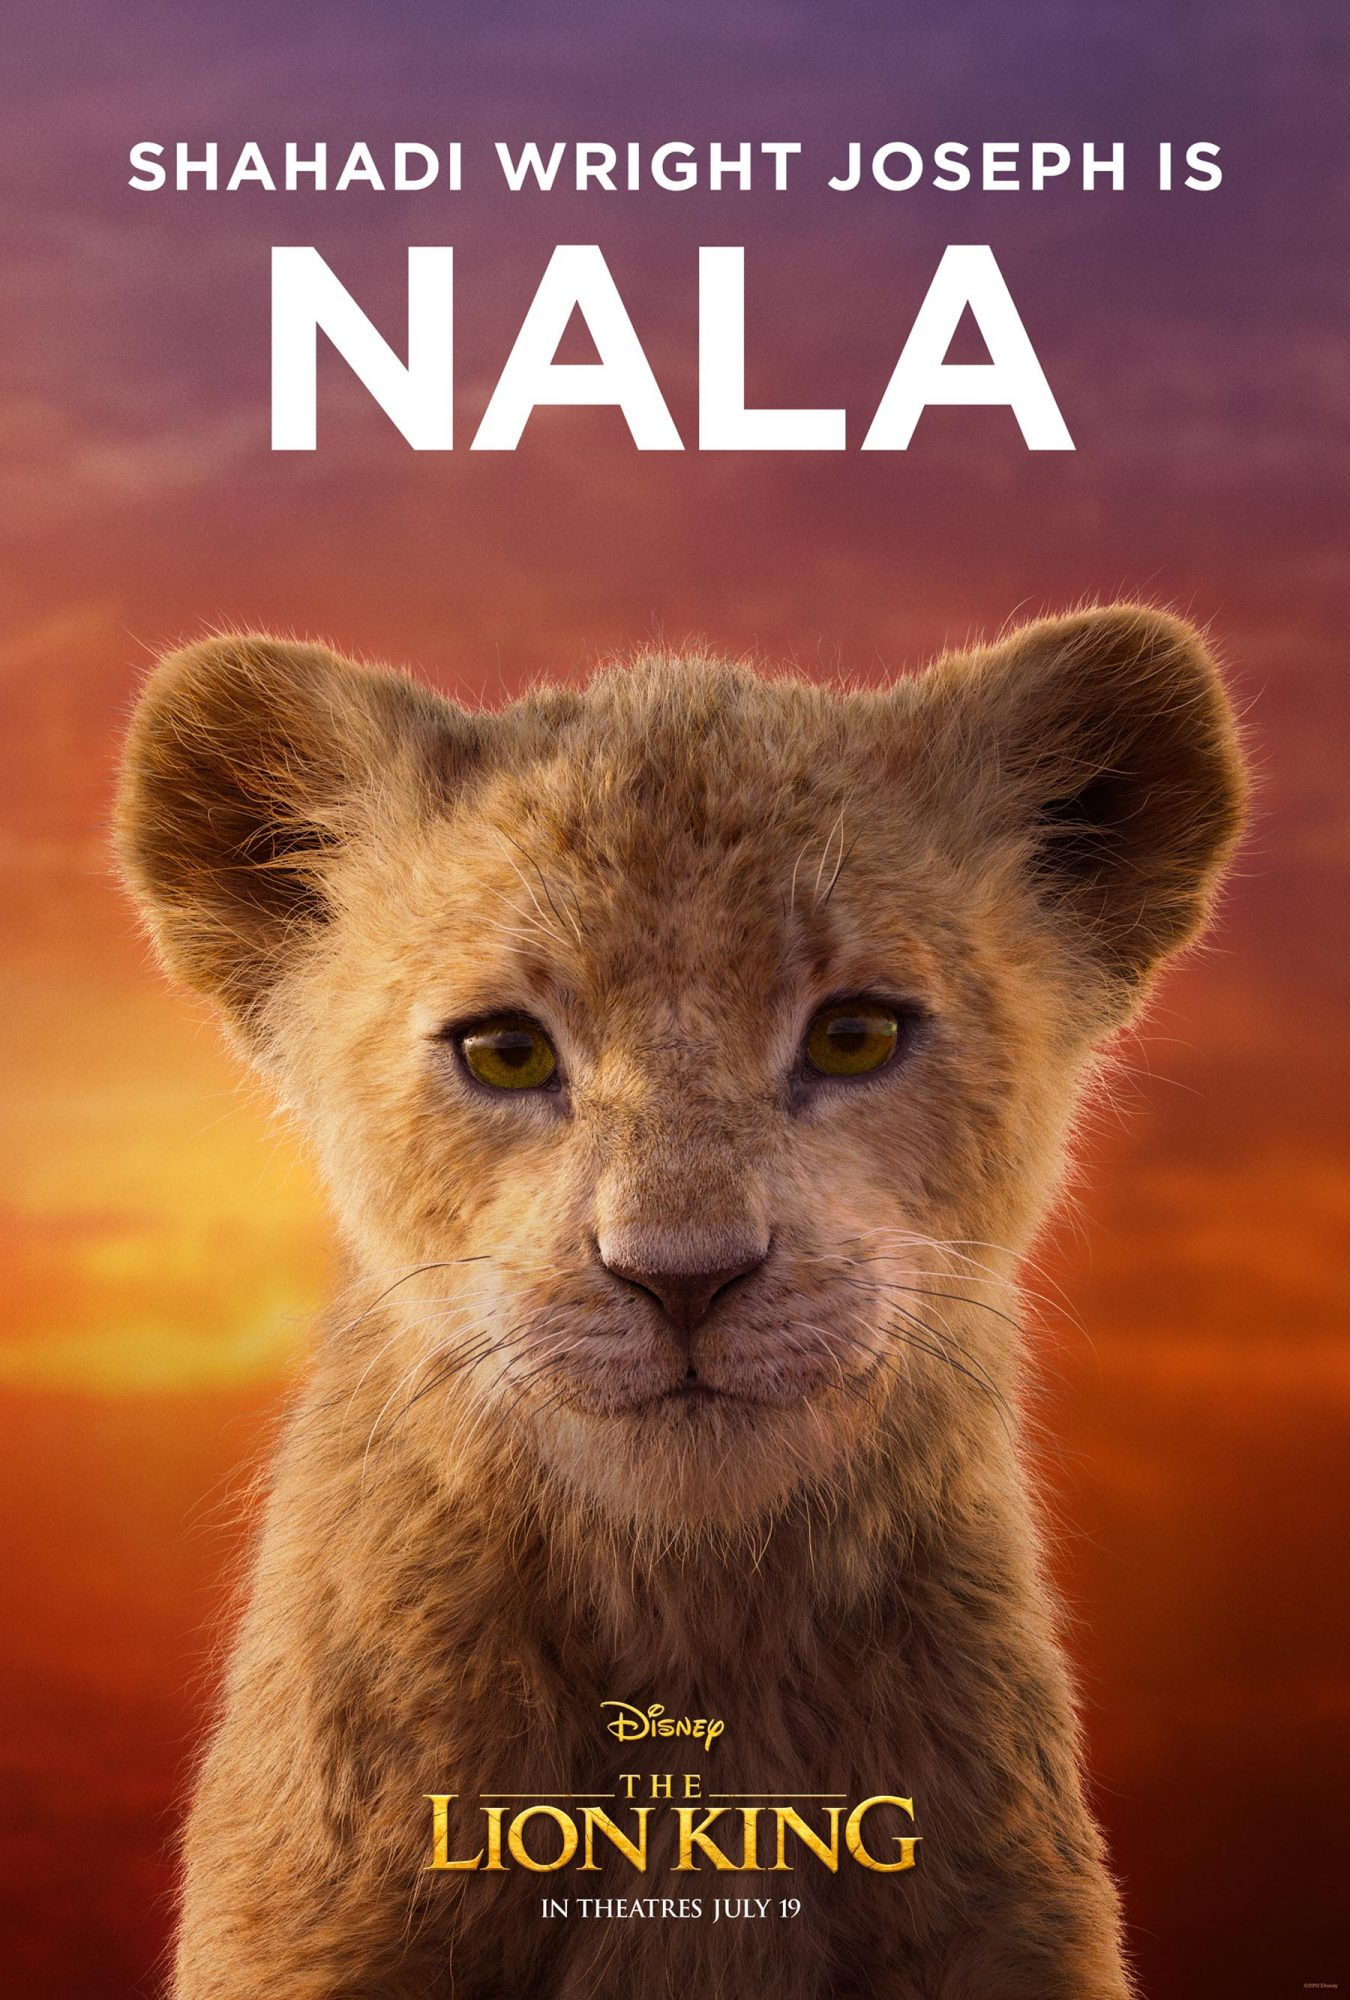 Lion King Character posters